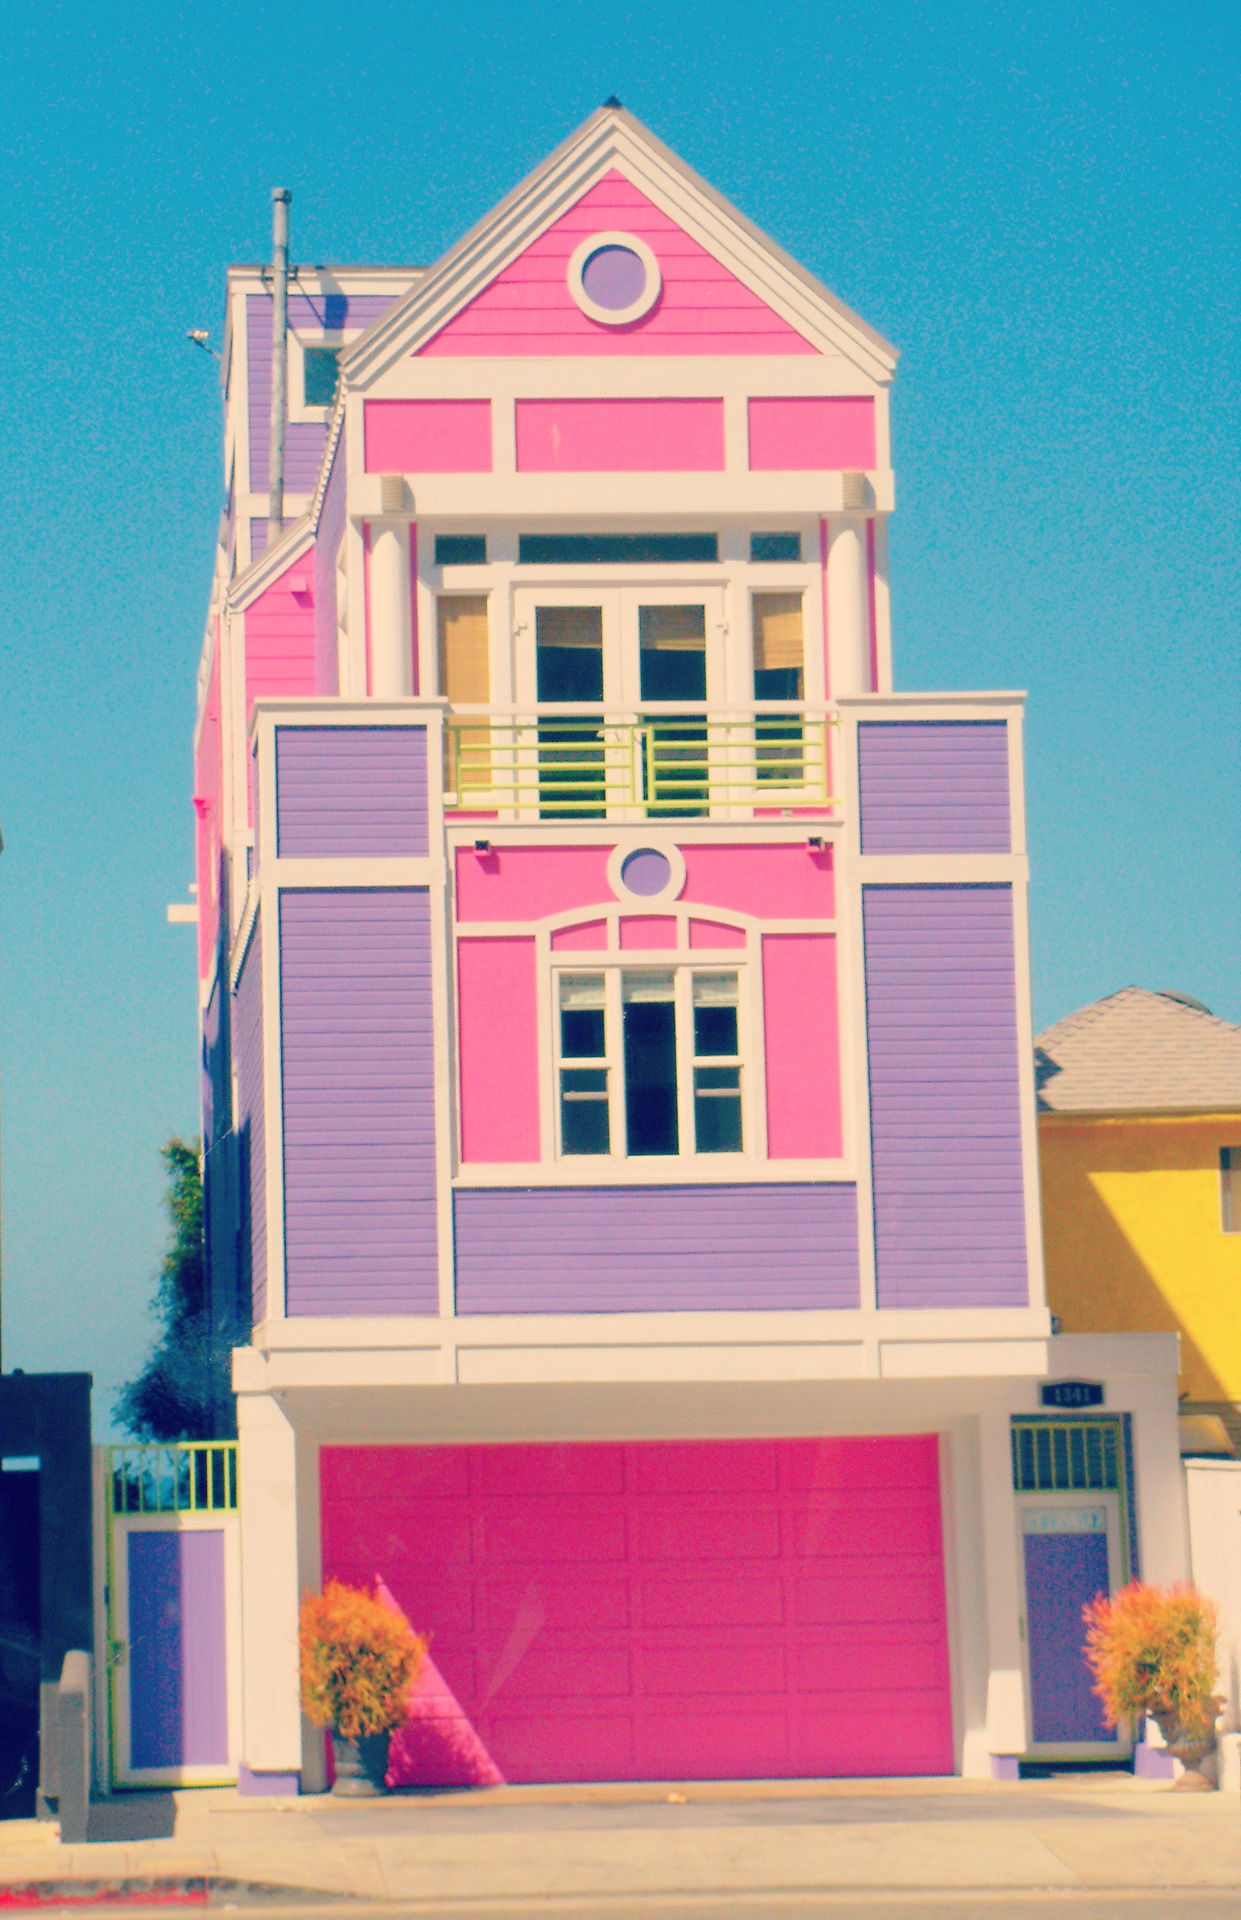 heychillwill:   House of Ruth Handler creator of Barbie in Santa Monica, L.A. California  swaggg